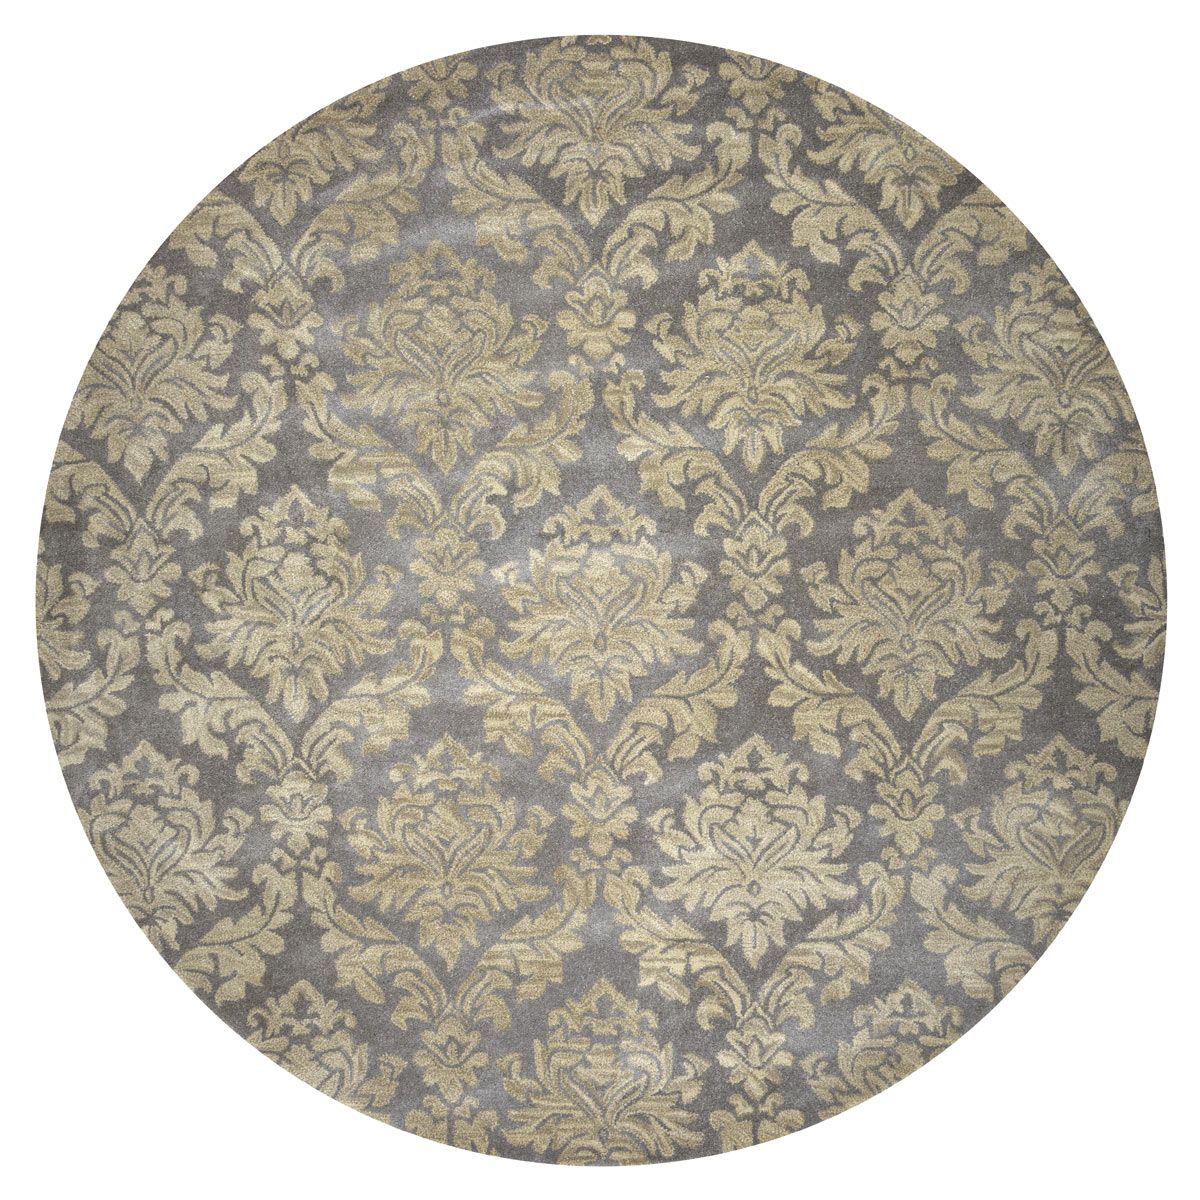 Ornate Saloon Rug - 8 Ft. Round